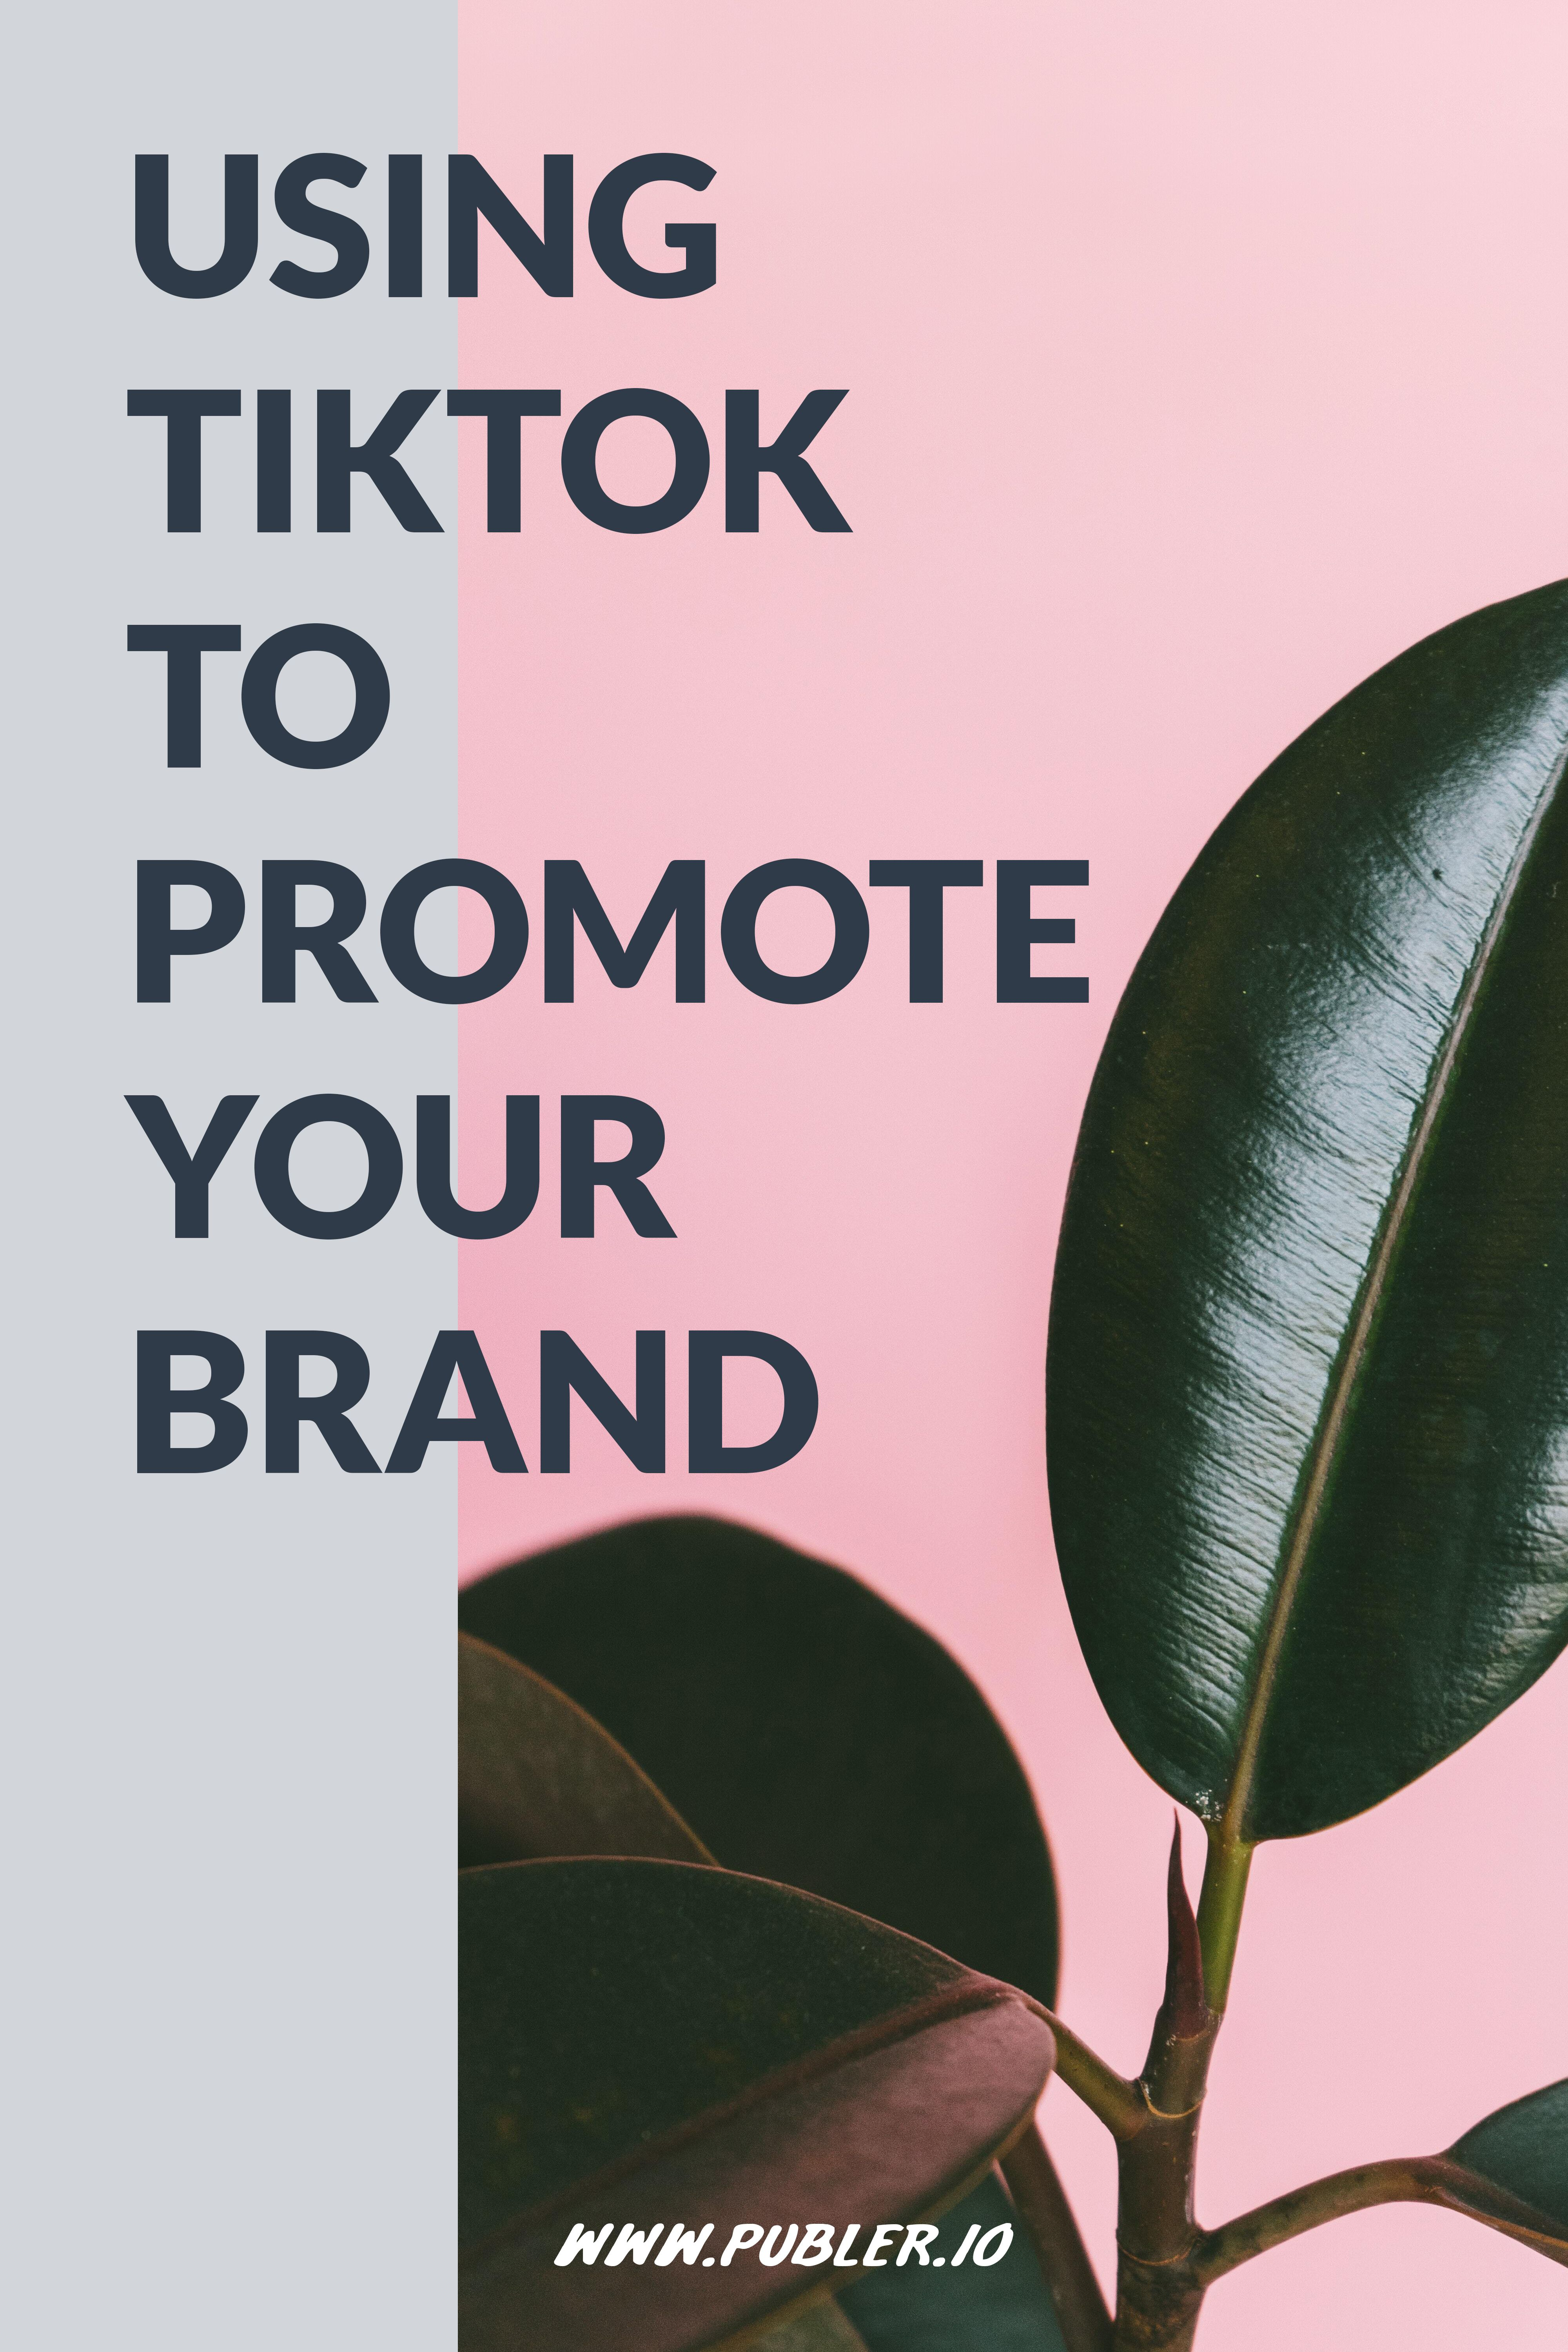 Using Tiktok To Promote Your Brand Fantasy Words Free Video Creator Smart Solutions